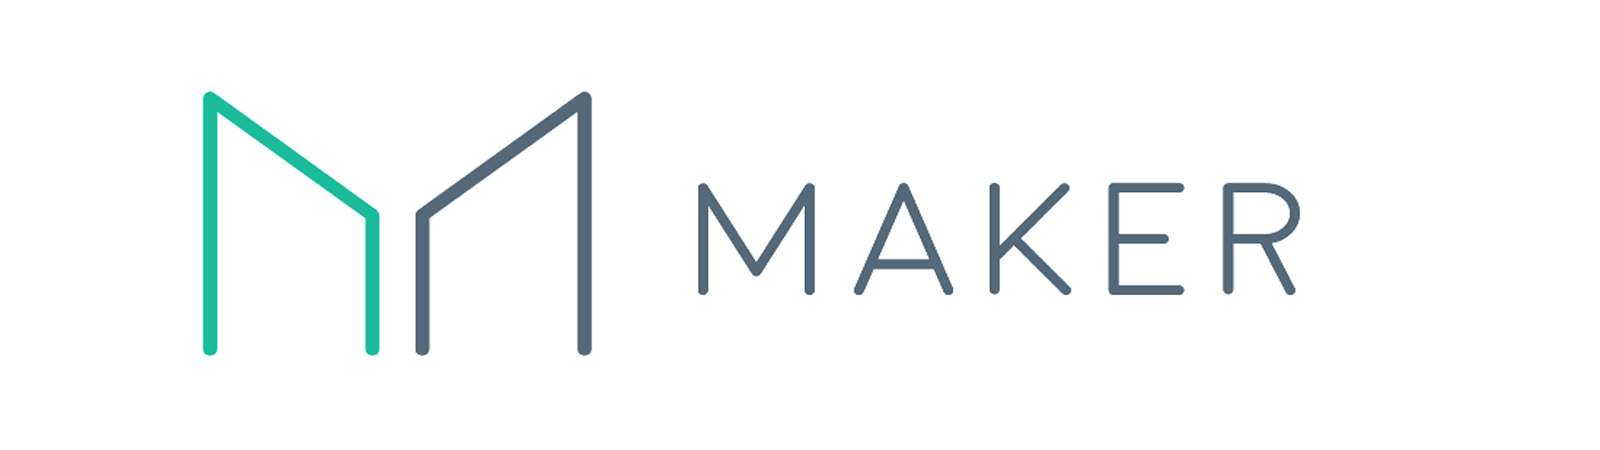 Maker DAO – defi projects 2020